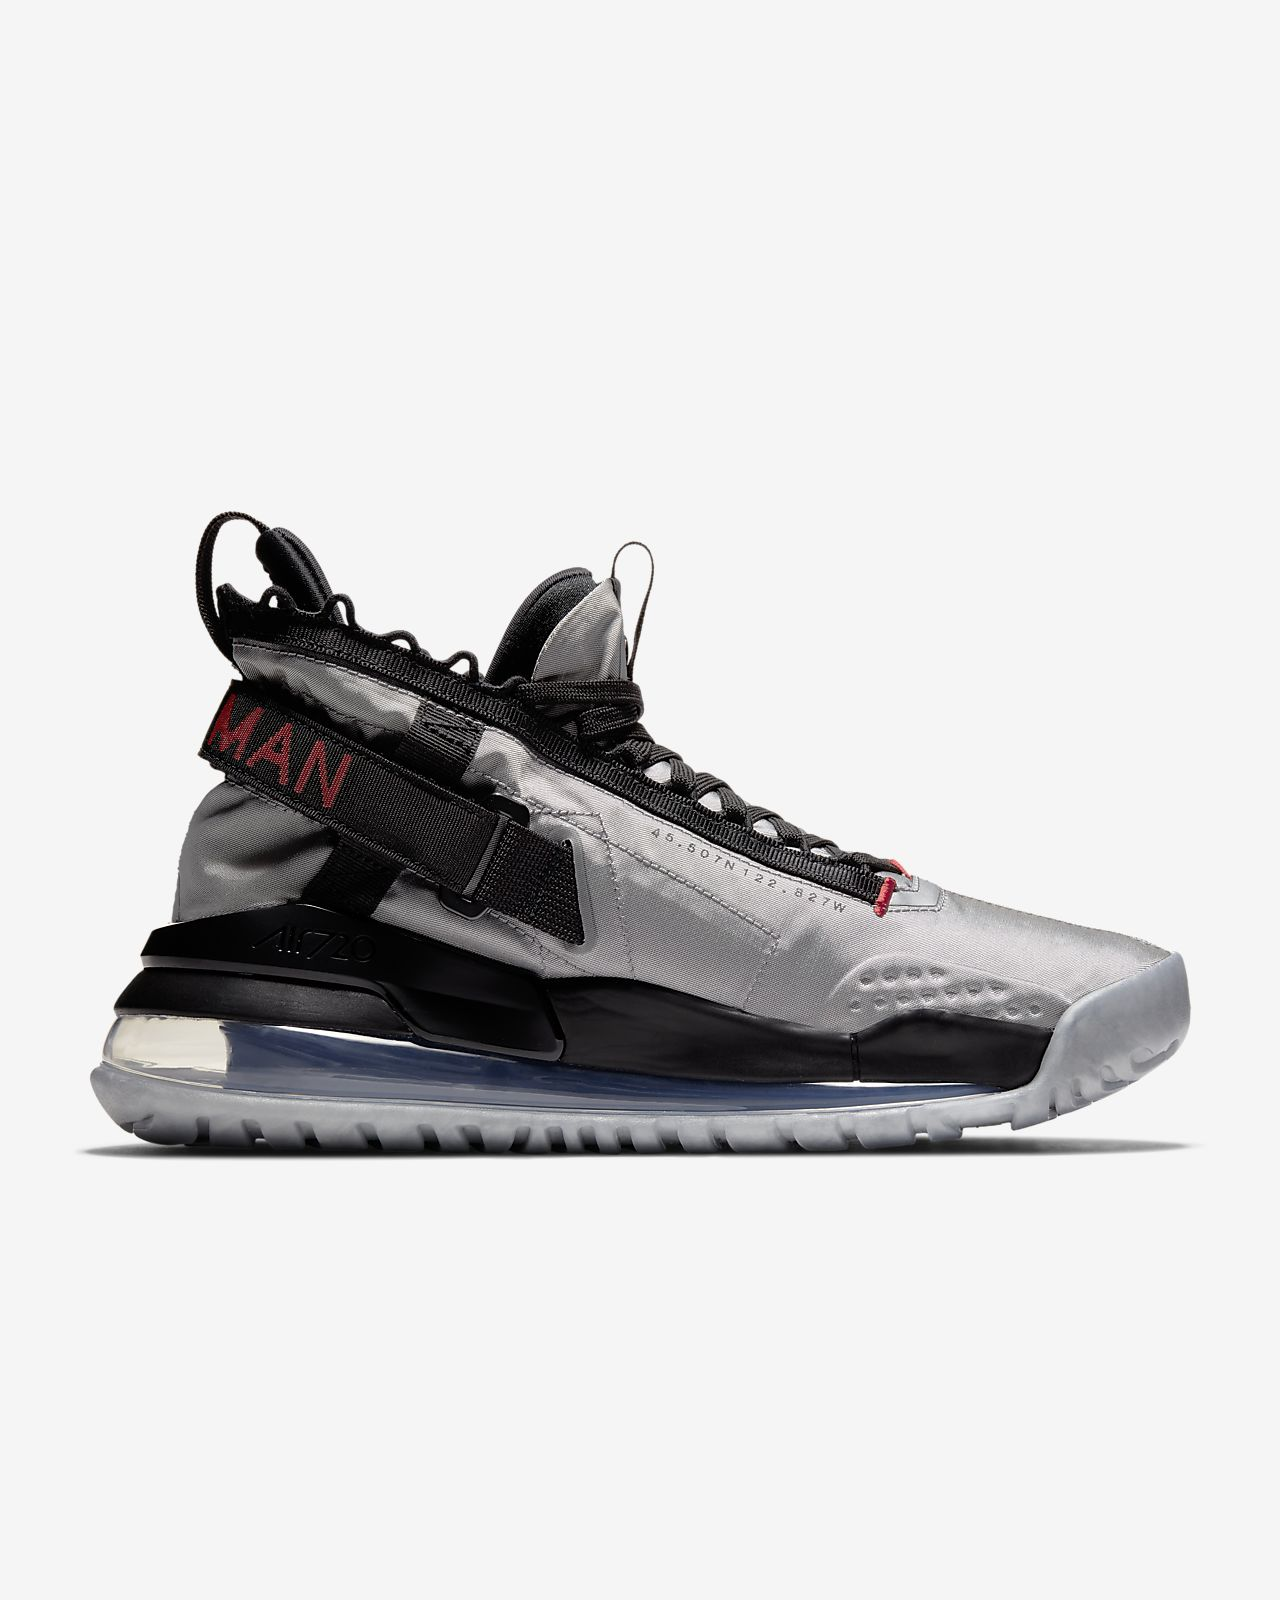 Nike Air Max 270 'Bred' For Sale